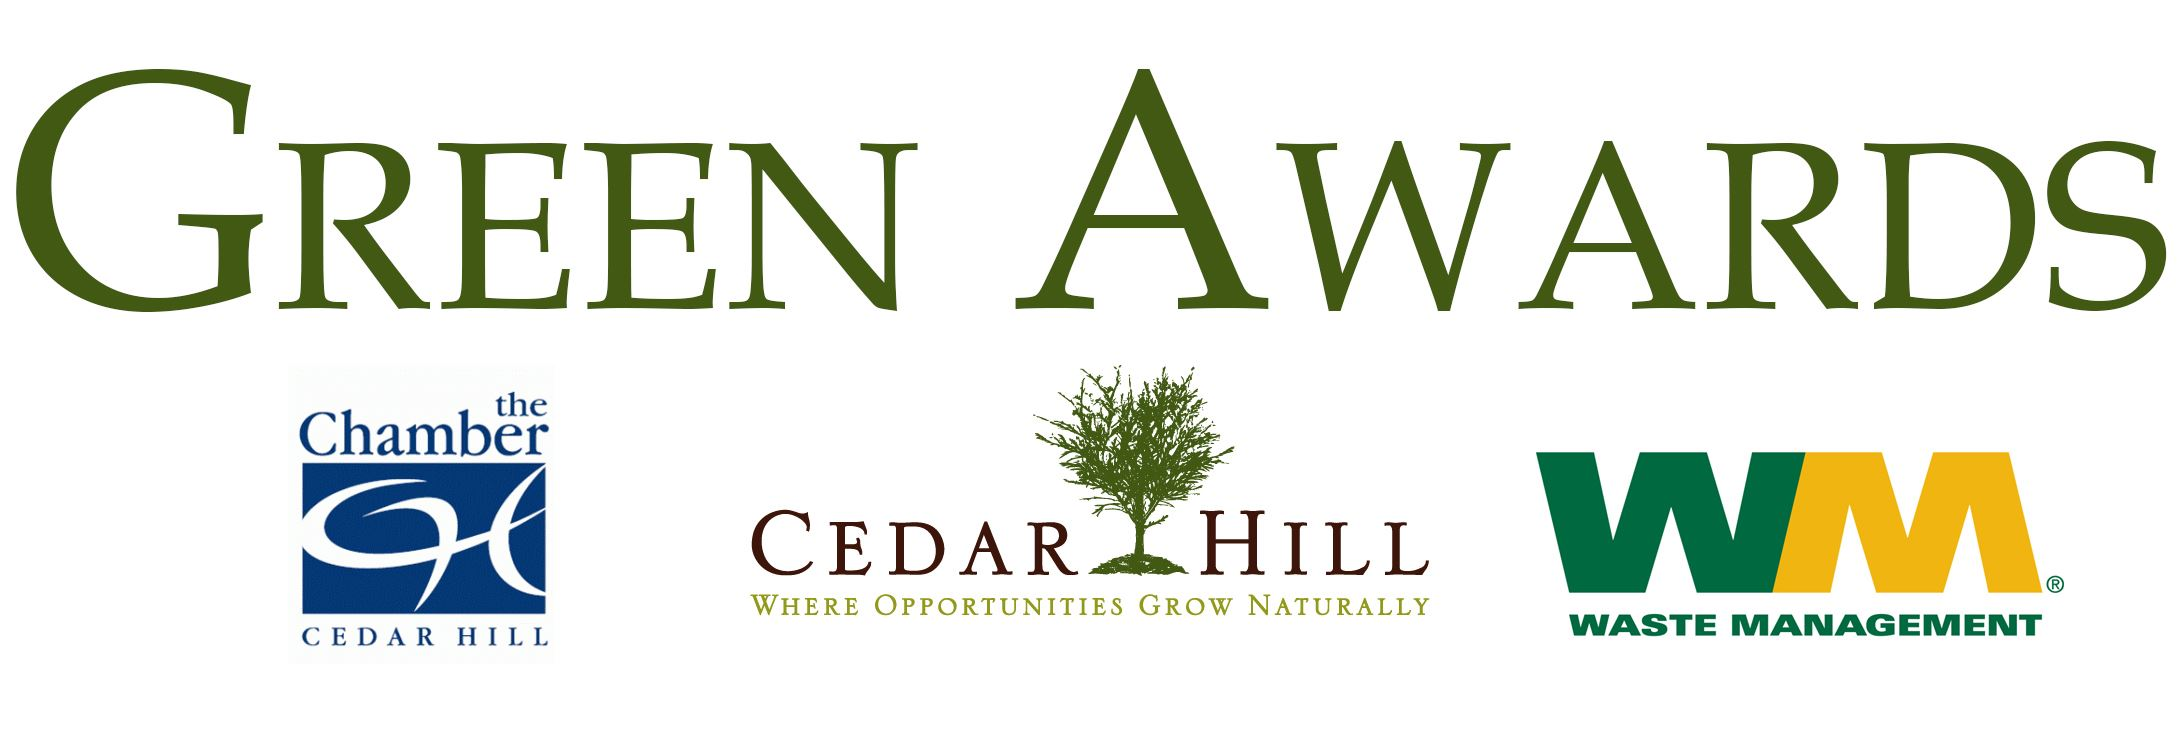 Green Awards Banner